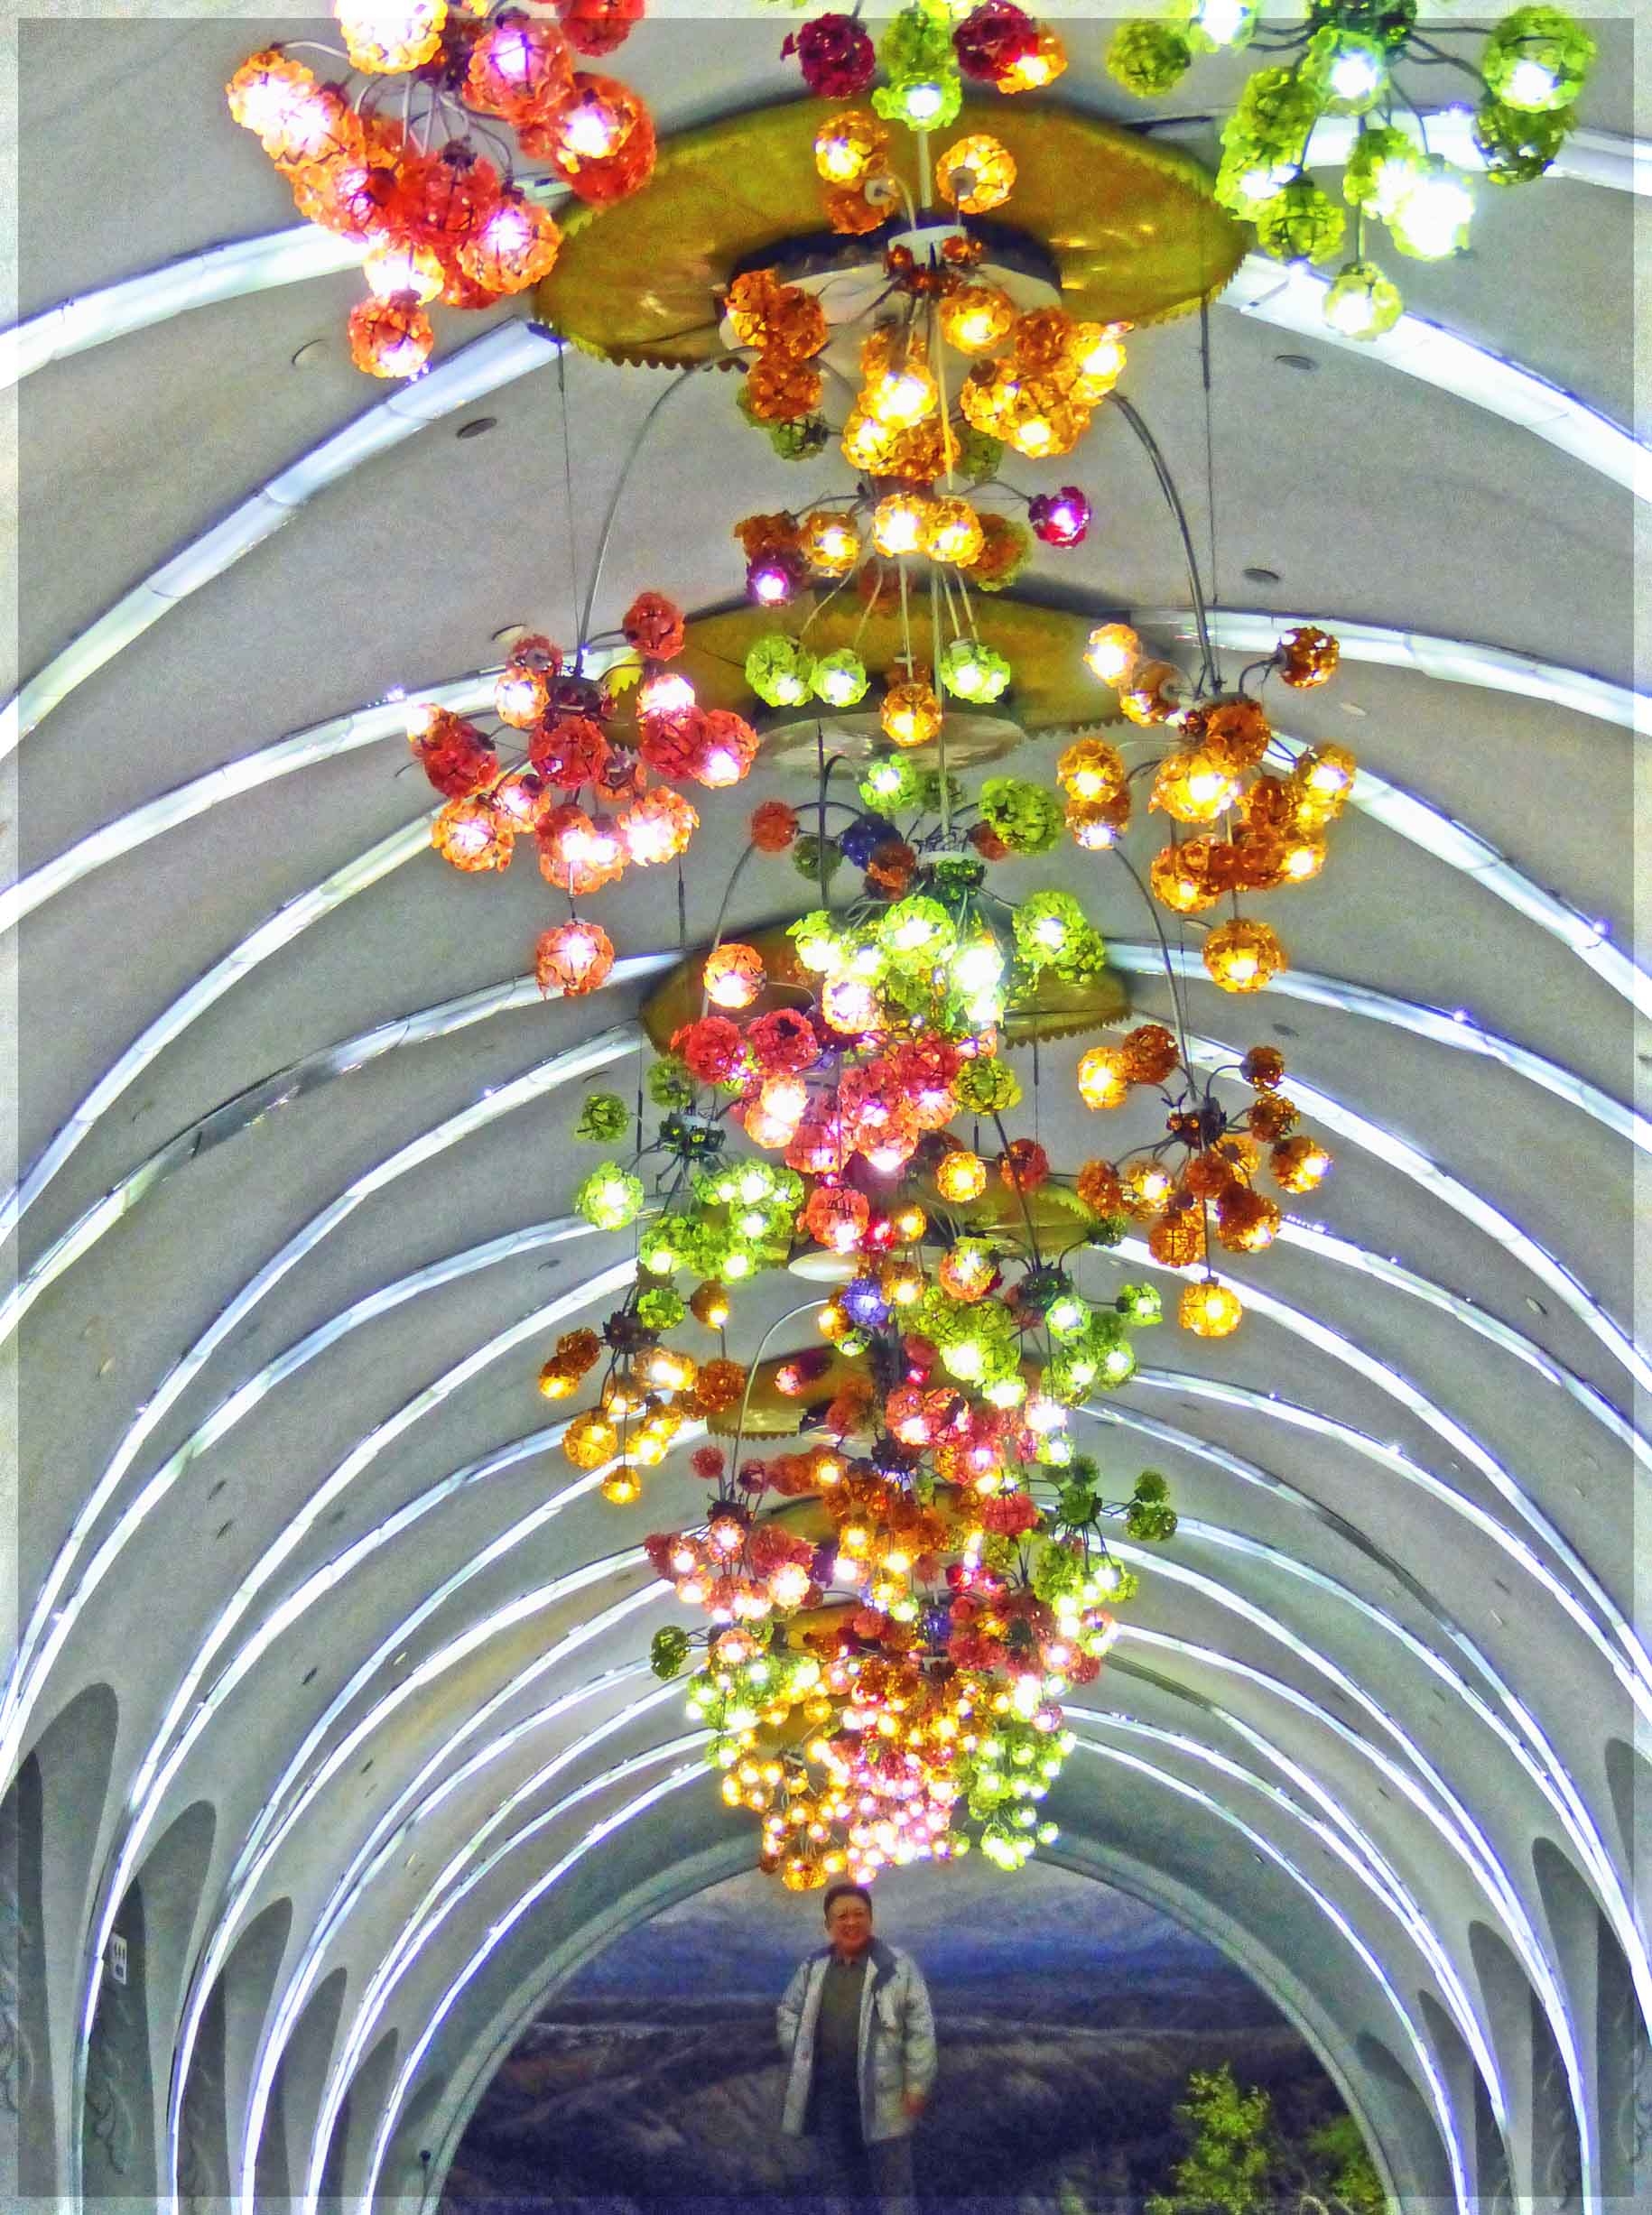 Coloured lights hanging from arched ceiling